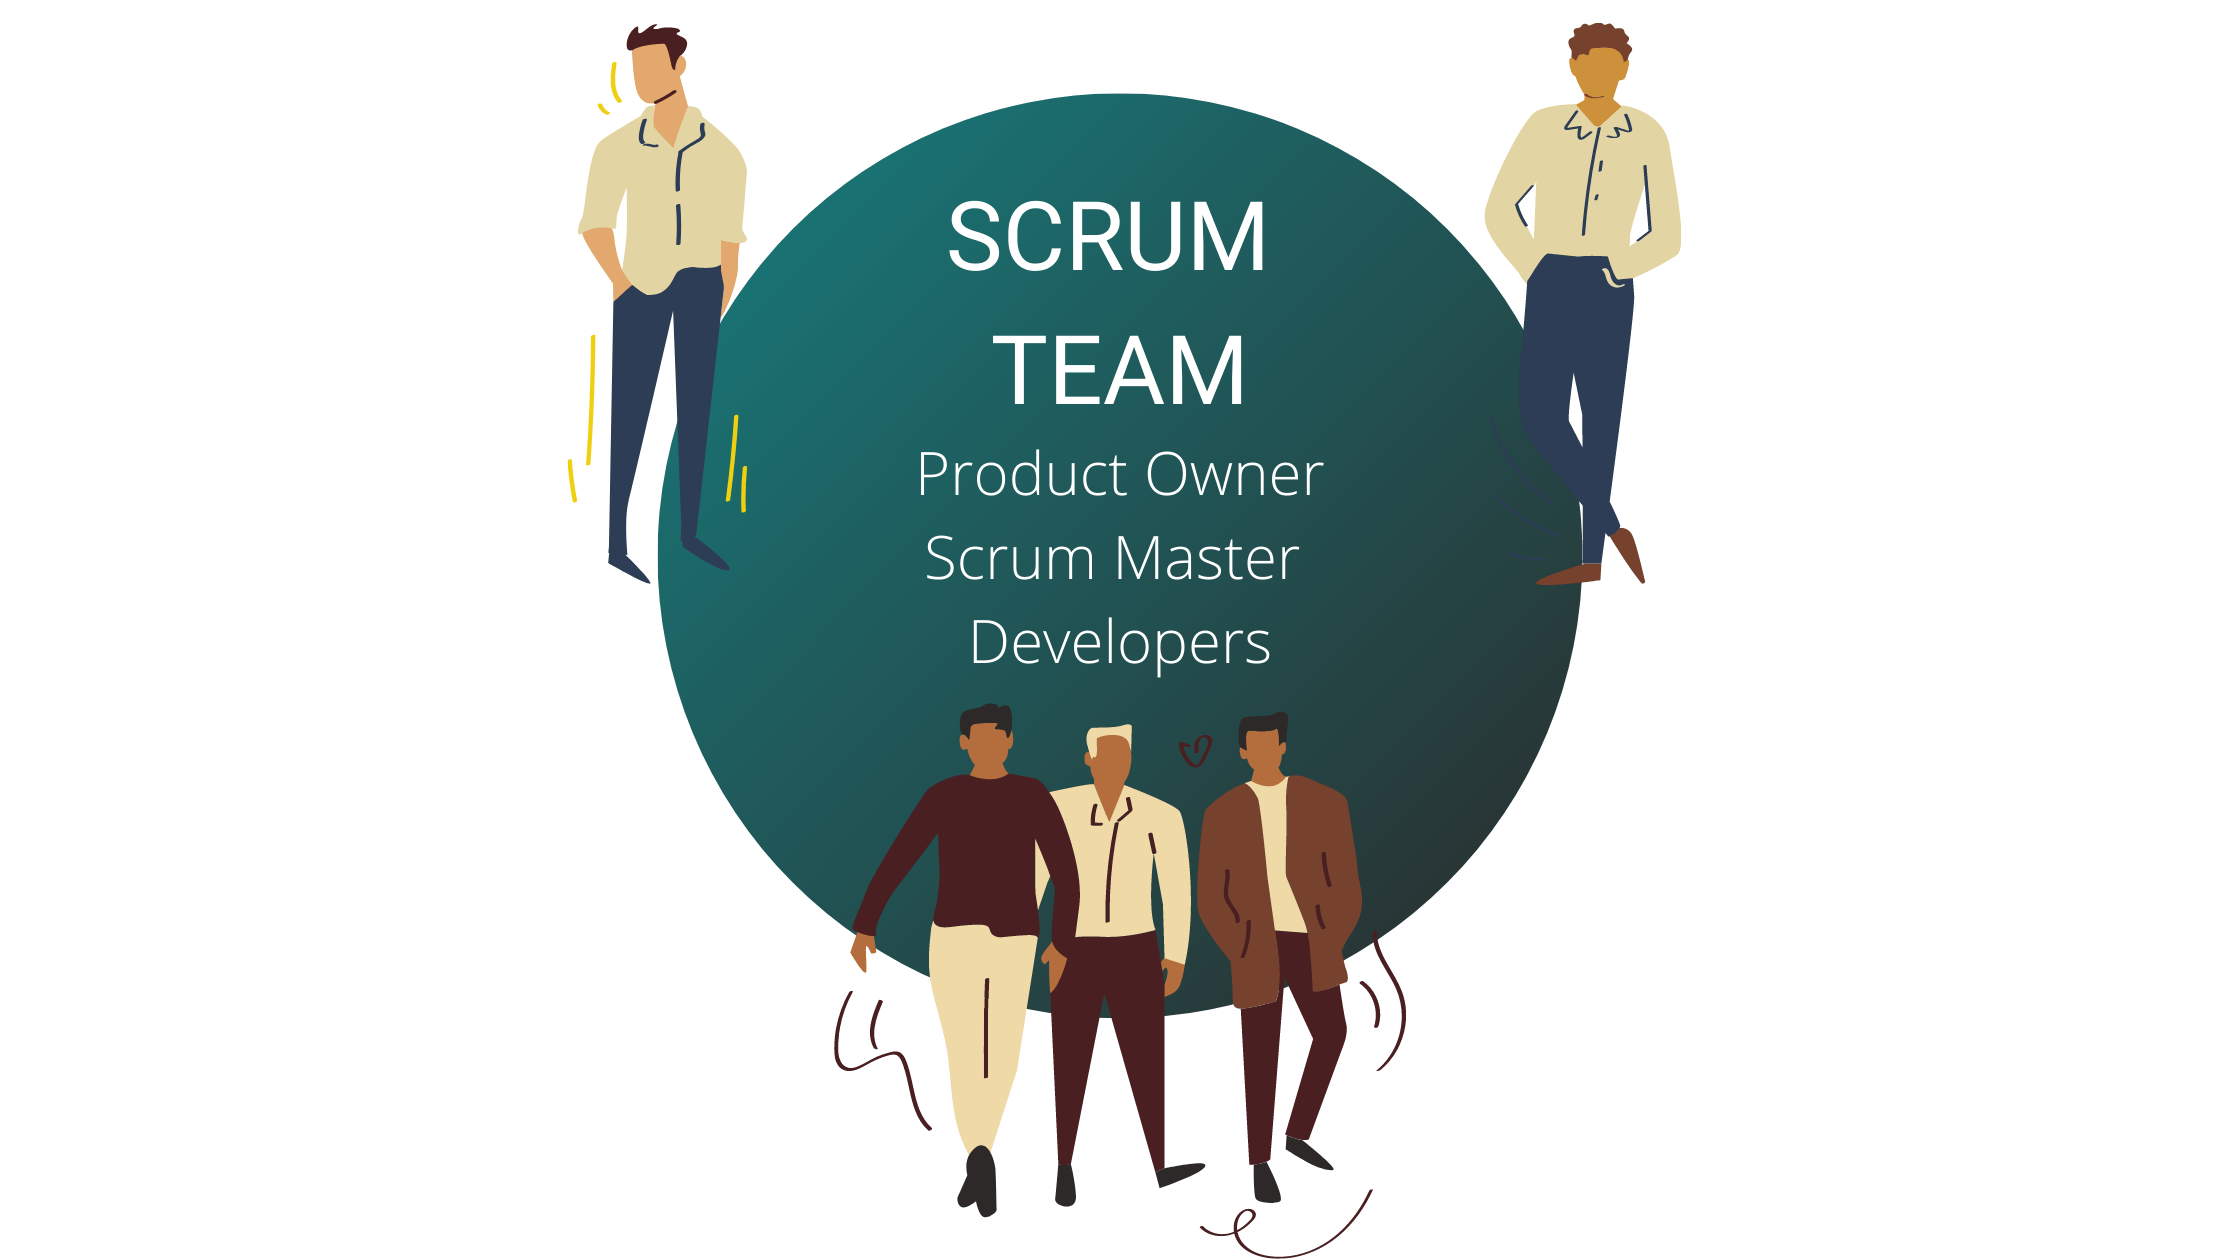 Scrum Team Scrum Guide 2020 Product Owner Scrum Master Developers